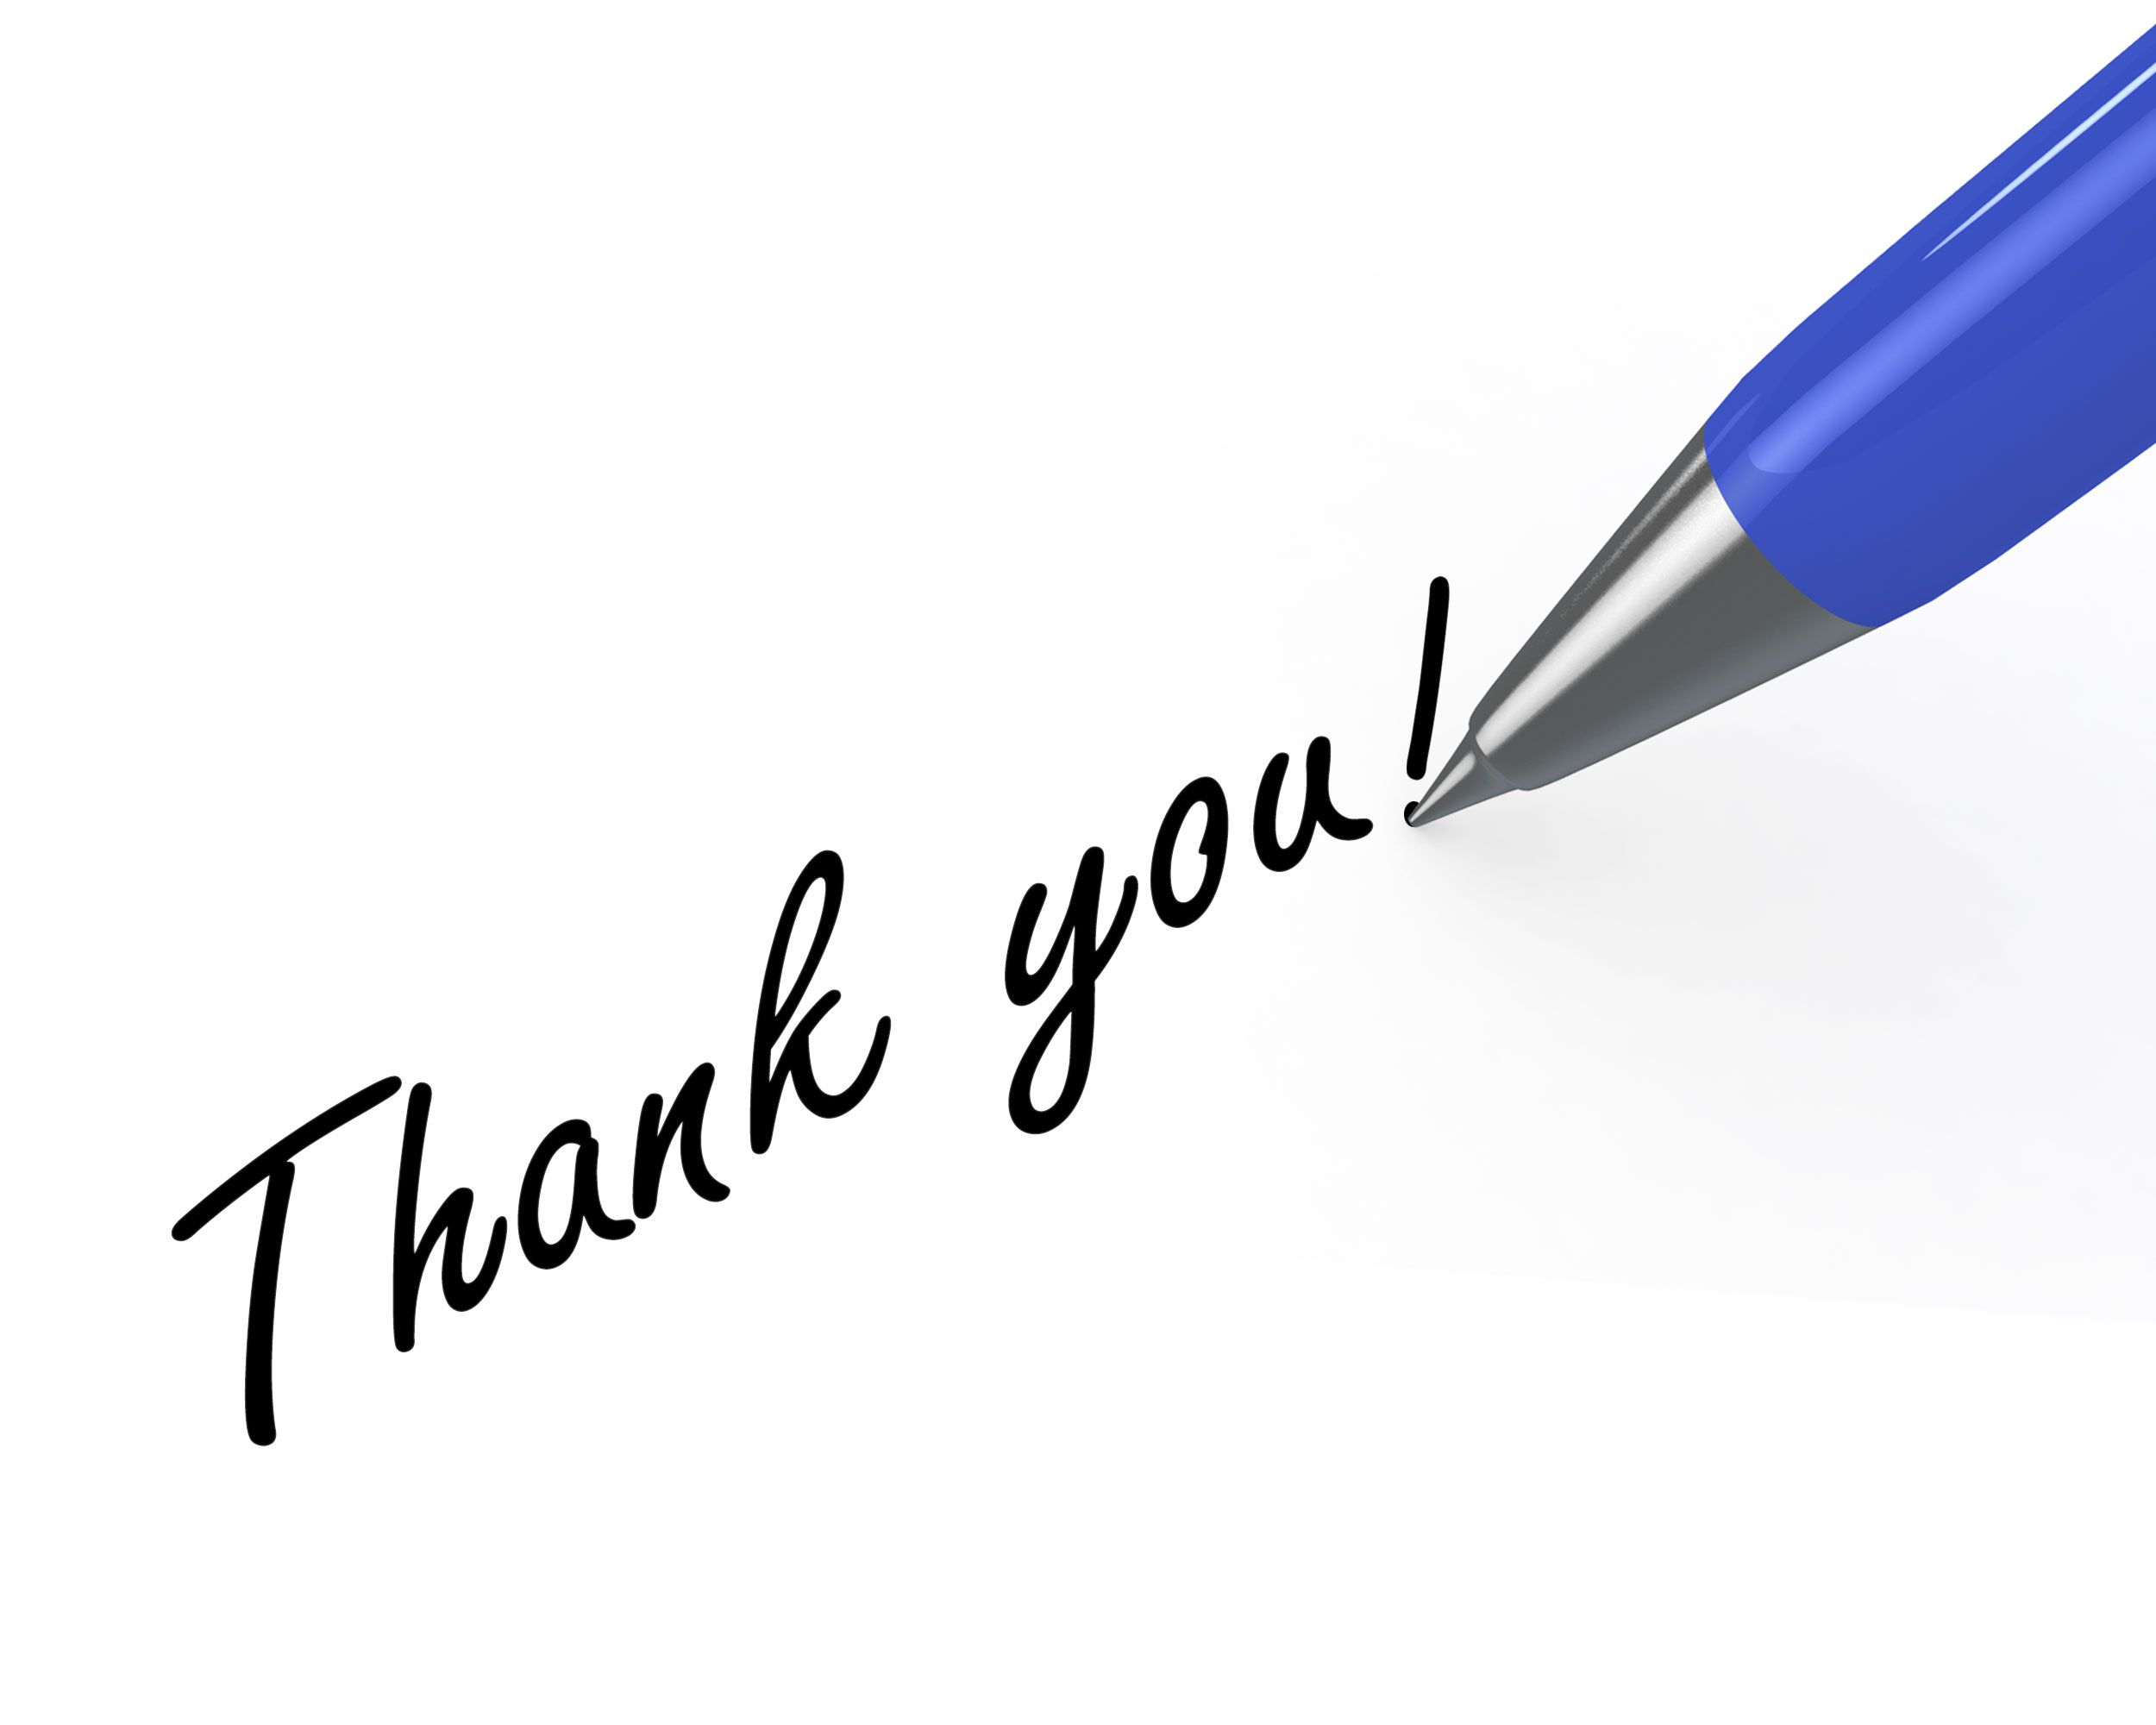 0914_thank_you_note_with_blue_pen_on_white_background_stock_photo_Slide01.  0914_thank_you_note_with_blue_pen_on_white_background_stock_photo_Slide01